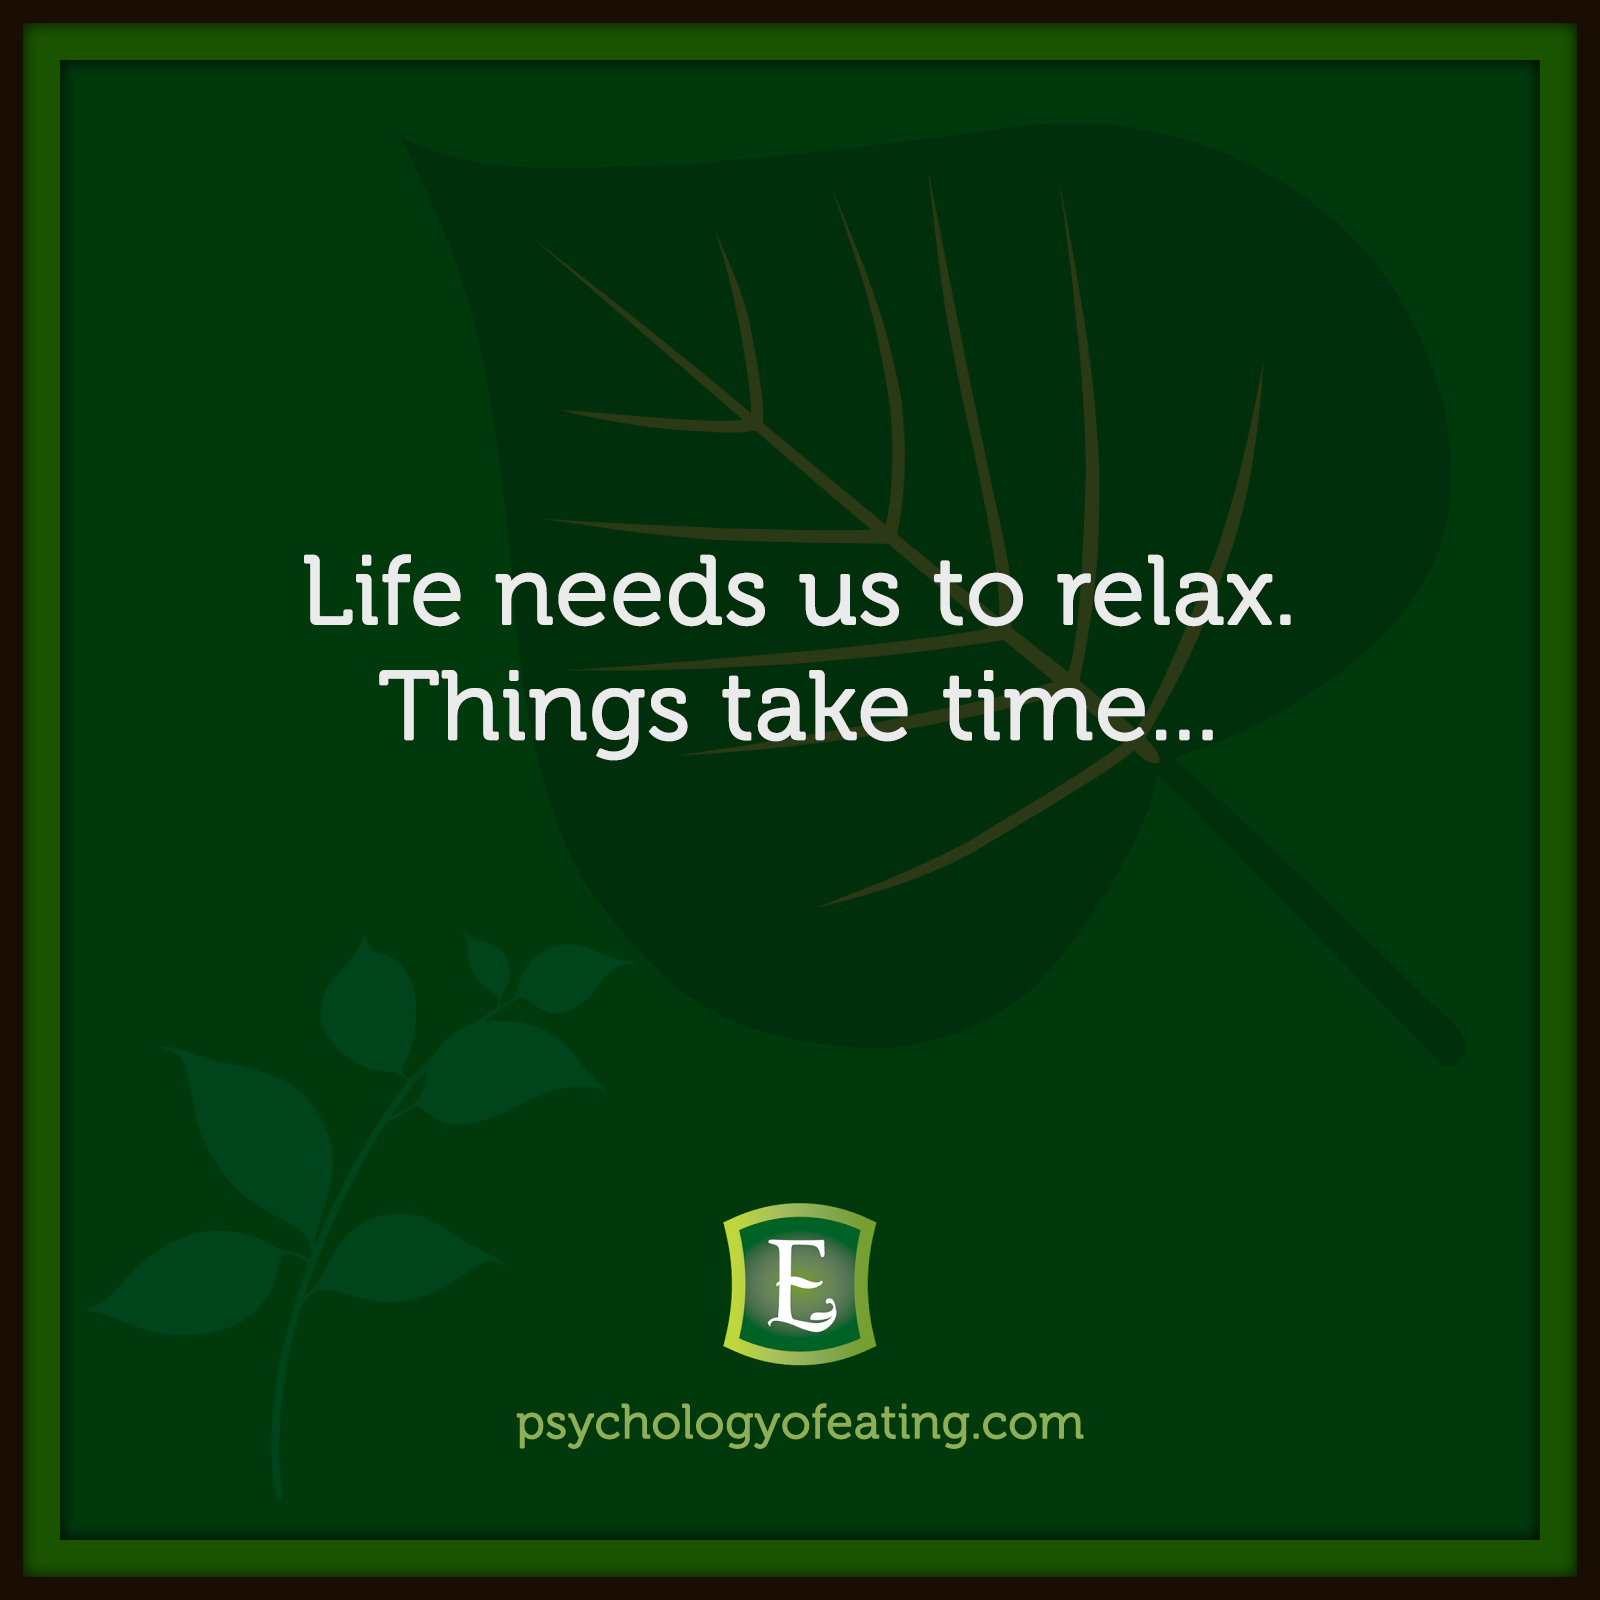 Life needs us to relax. Things take time… #health #nutrition #eatingpsychology #IPE